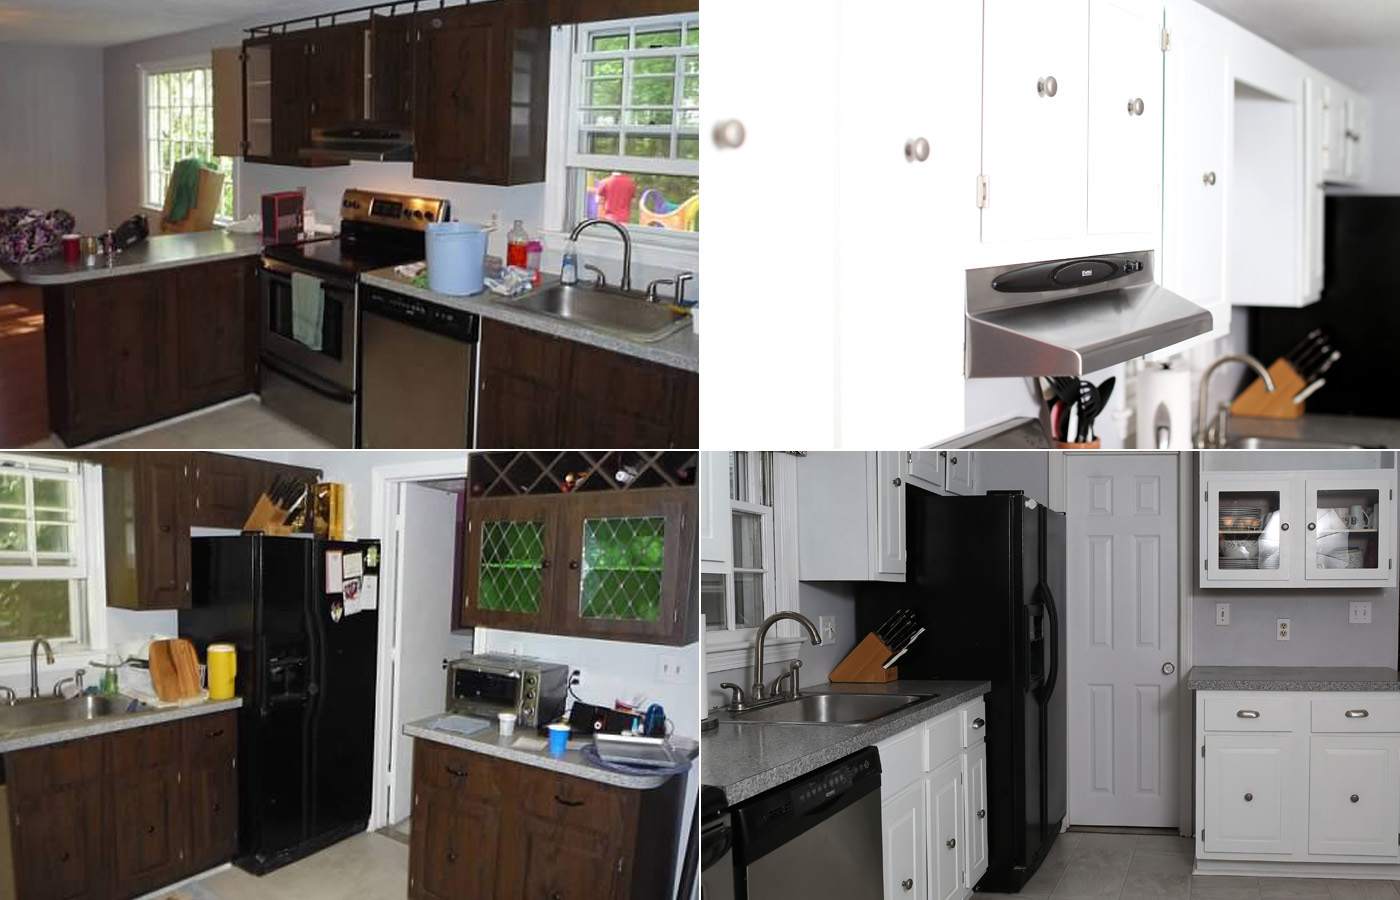 How To Take Down And Paint Your Kitchen Cabinets Save A Bundle Home Improvement Style Boston Real Estate